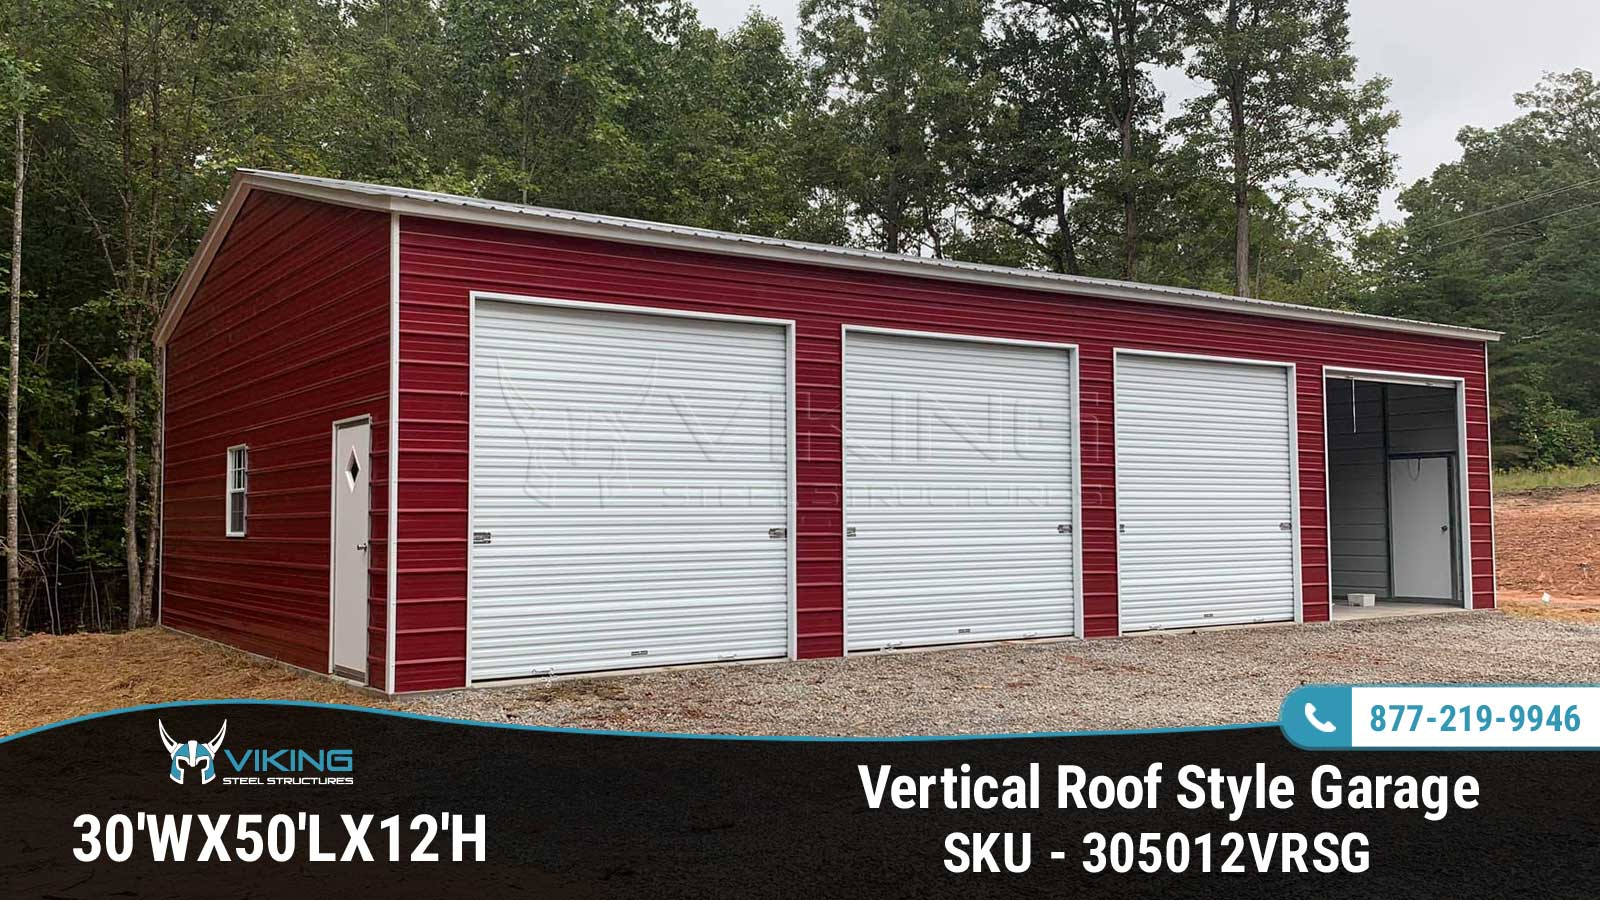 30'x50'x12' Vertical Roof Style Garage Side View